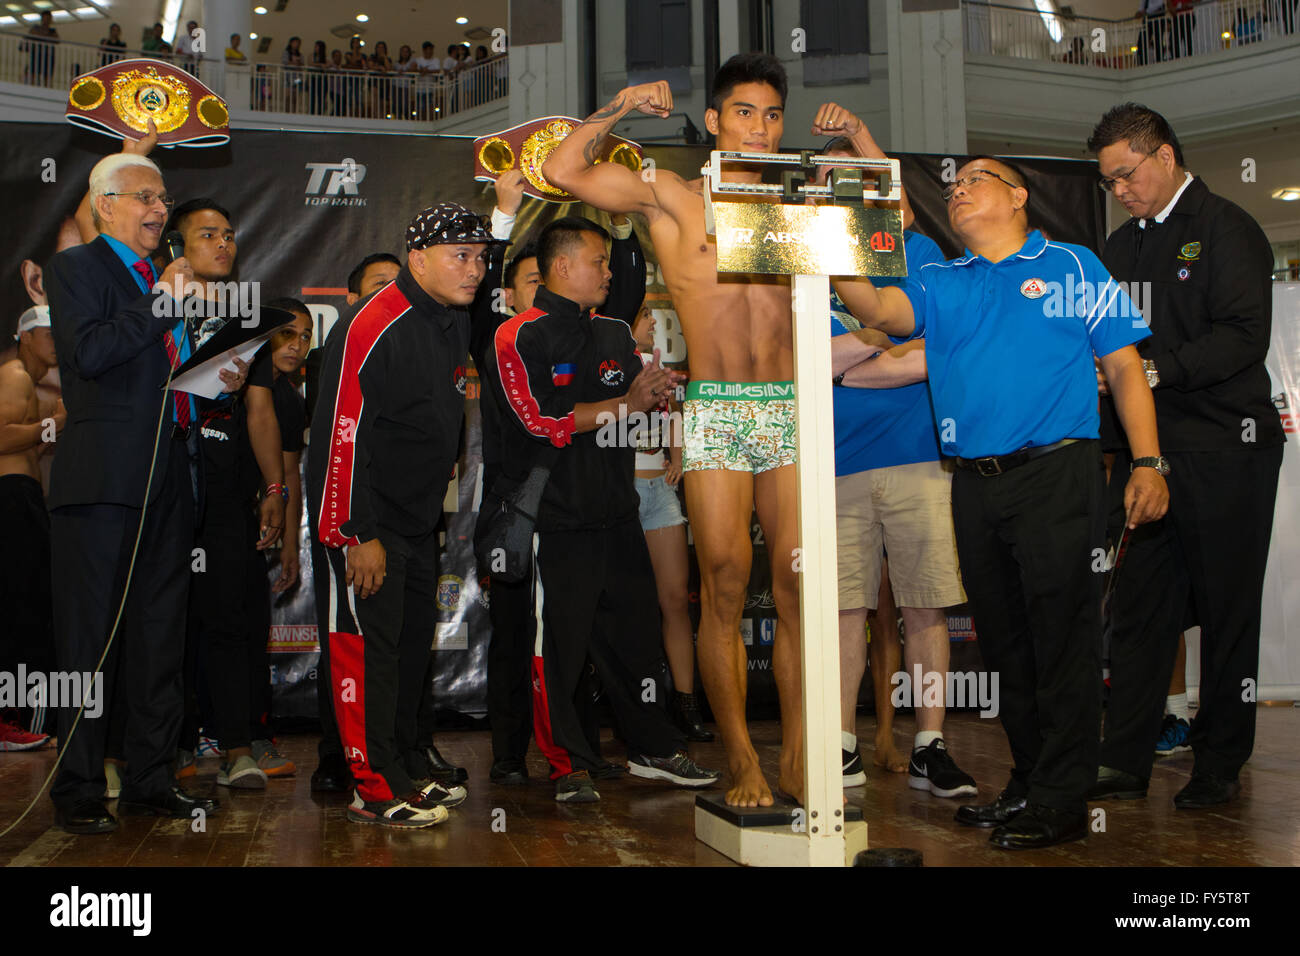 22/4/2016 Ayala Centre,Cebu City,Philippines.Weigh-in for the WBO World Jr,Featherweight Championship fight between - Stock Image